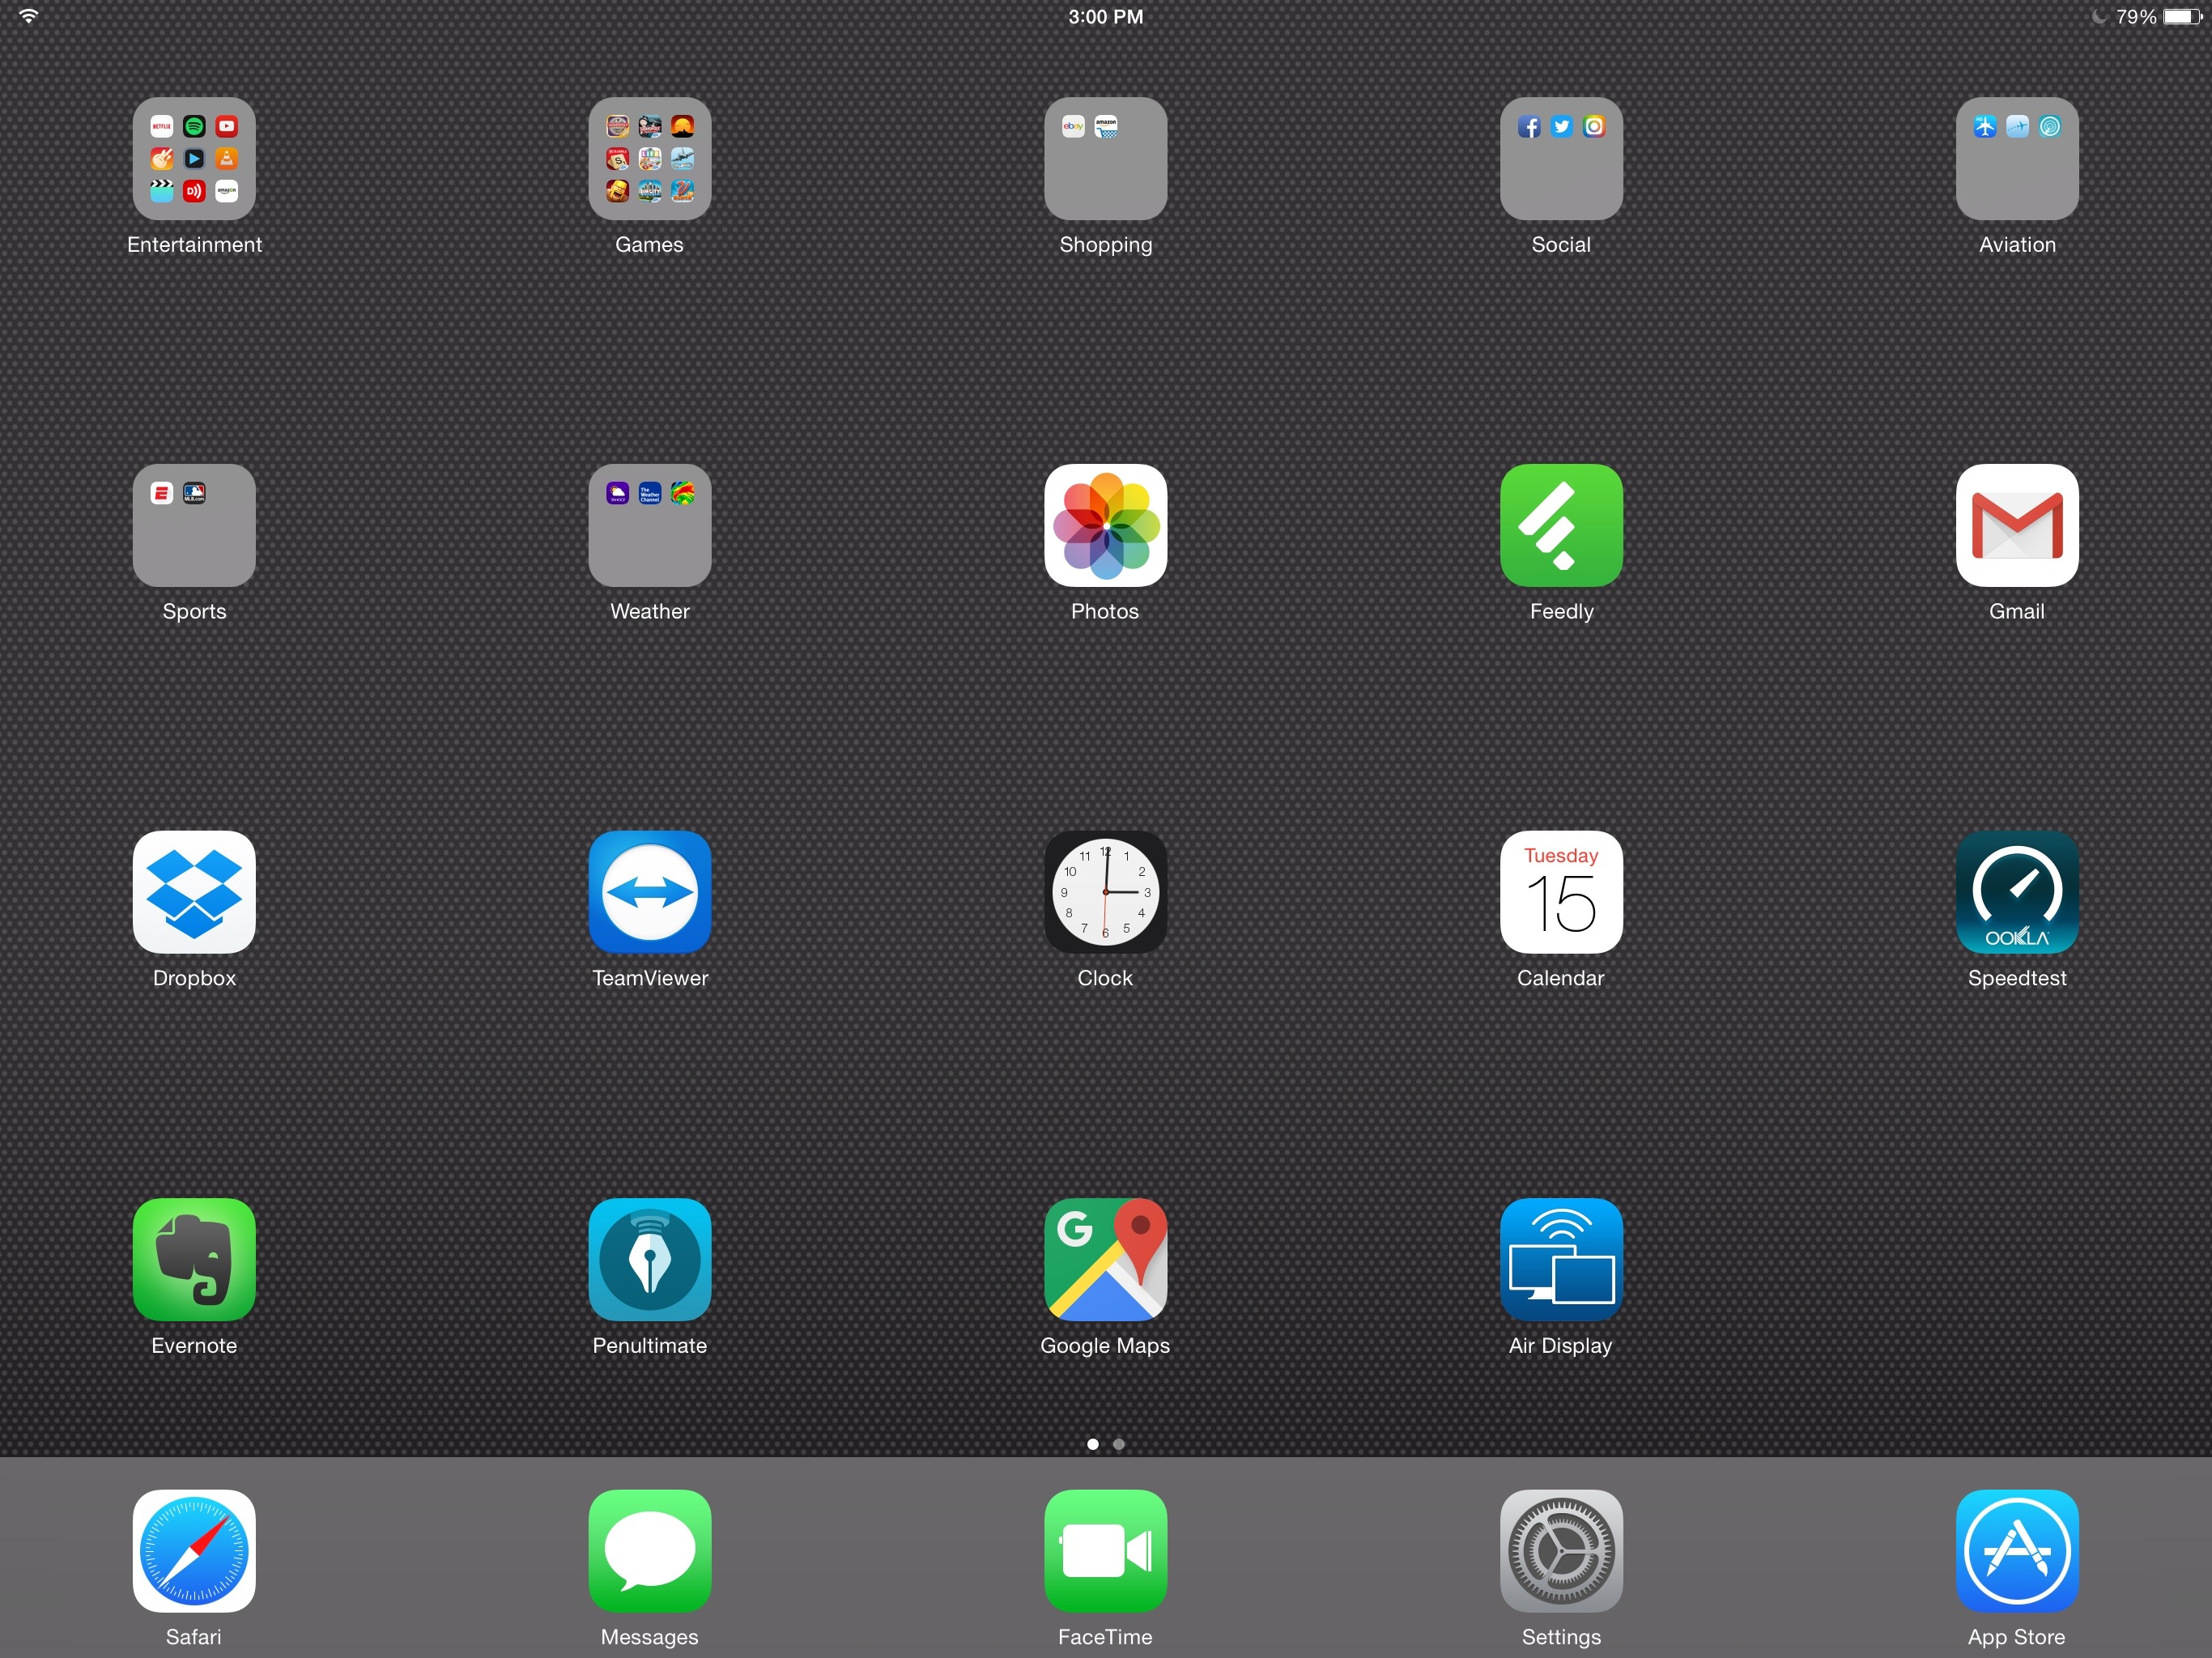 How to Get the iPad Pro's Resolution on iPad Air